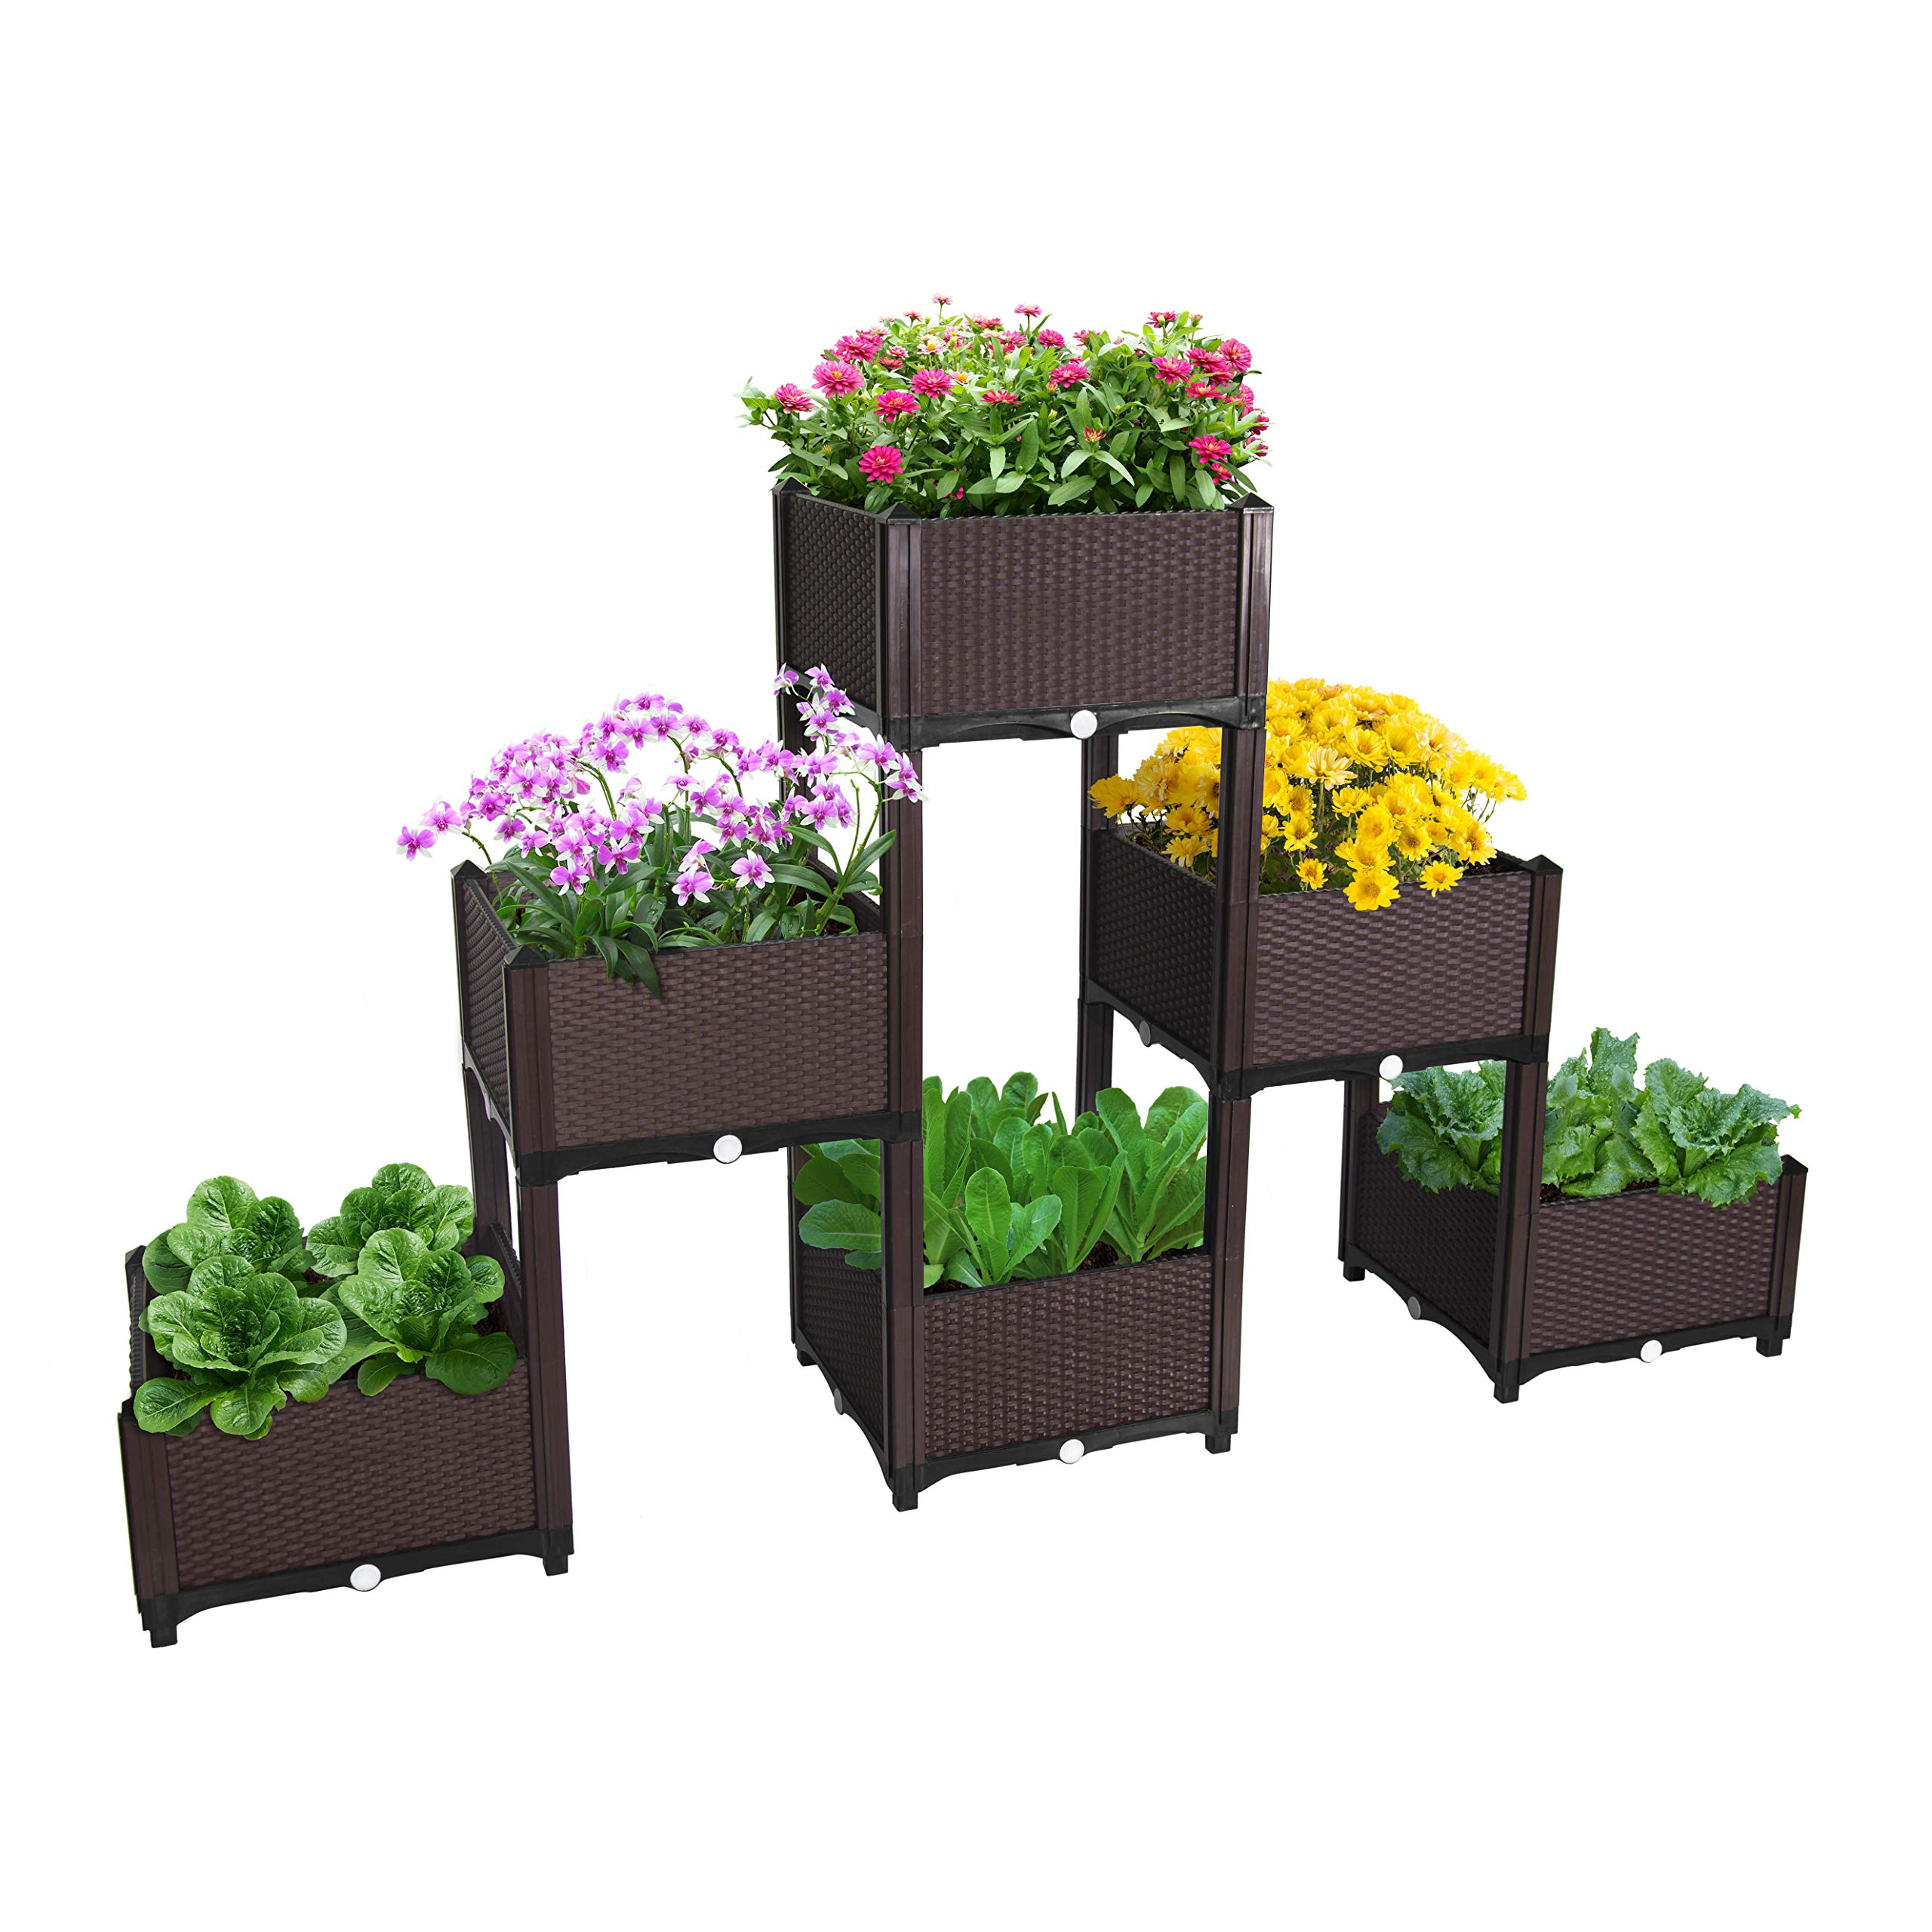 D'vine Dev Elevated Raised Garden Bed Kits for Flowers and Vegetable, Easy Assembly Planting Box Raised Garden Kit, Standing Planter for Garden, Patio, Backyard, Porch and Home Decoration by D'vine Dev